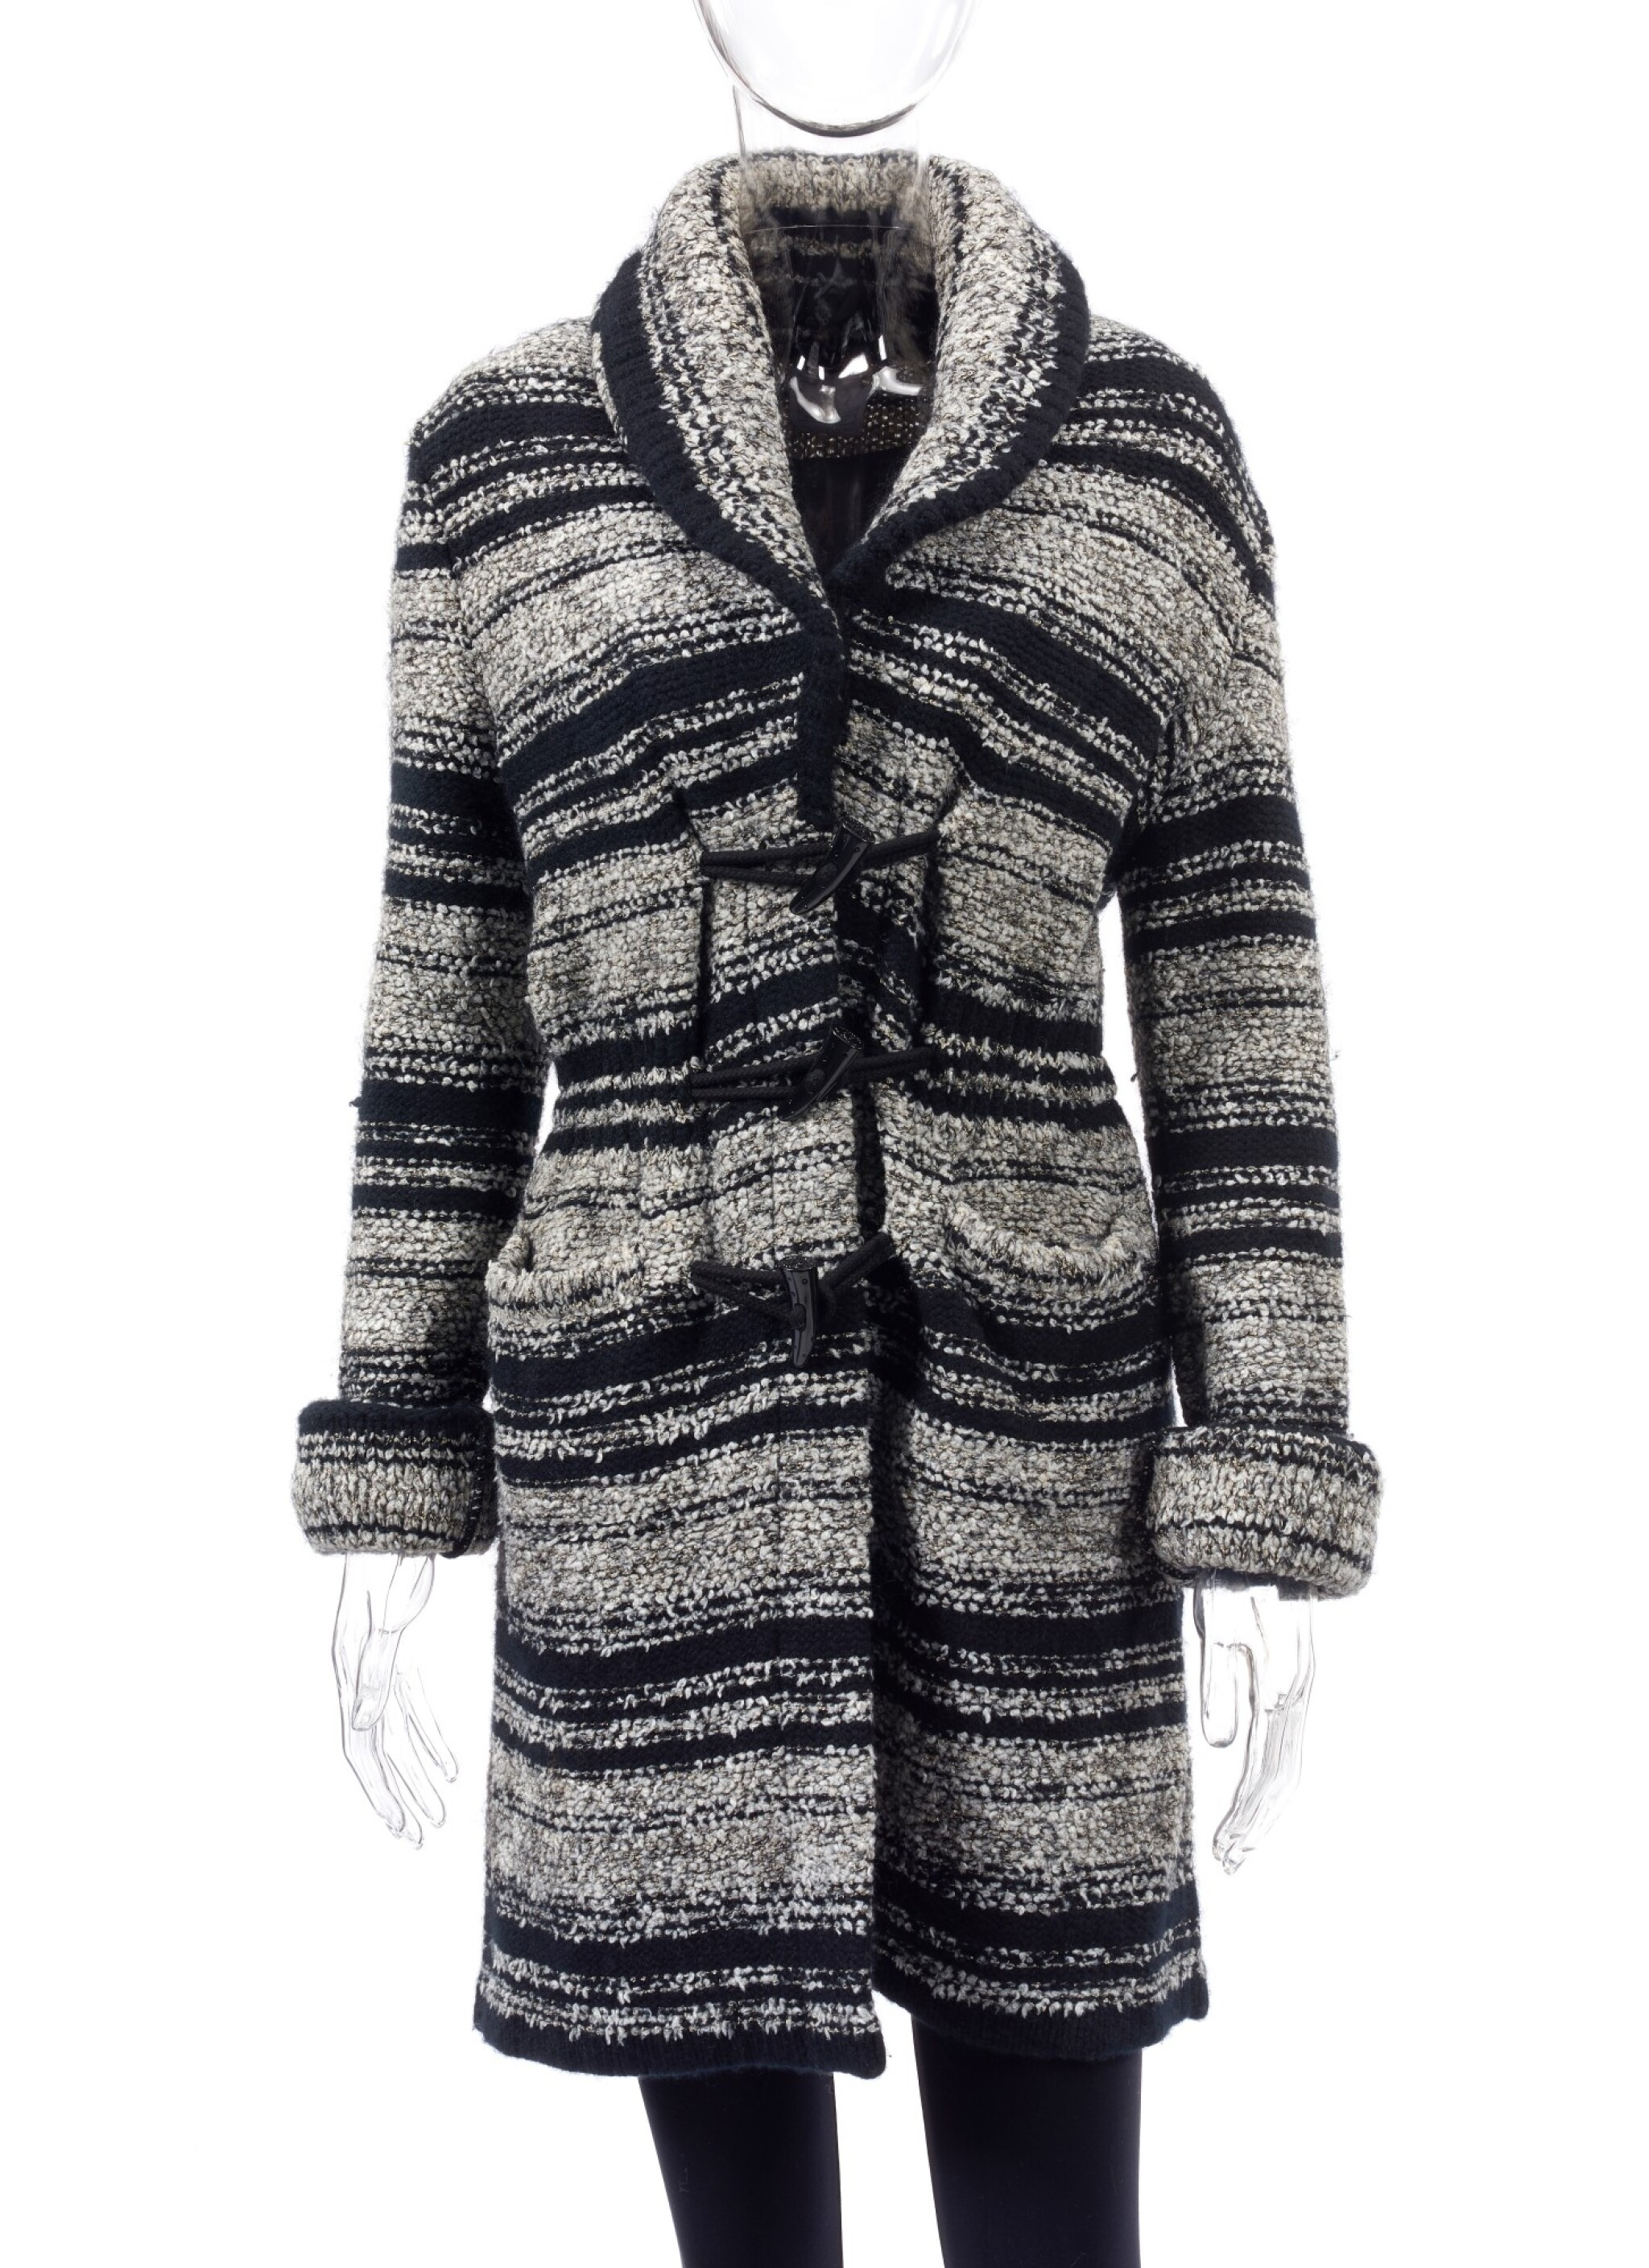 BLACK AND GREY METALLIC CACHEMIRE-BLEND COAT, CHANEL